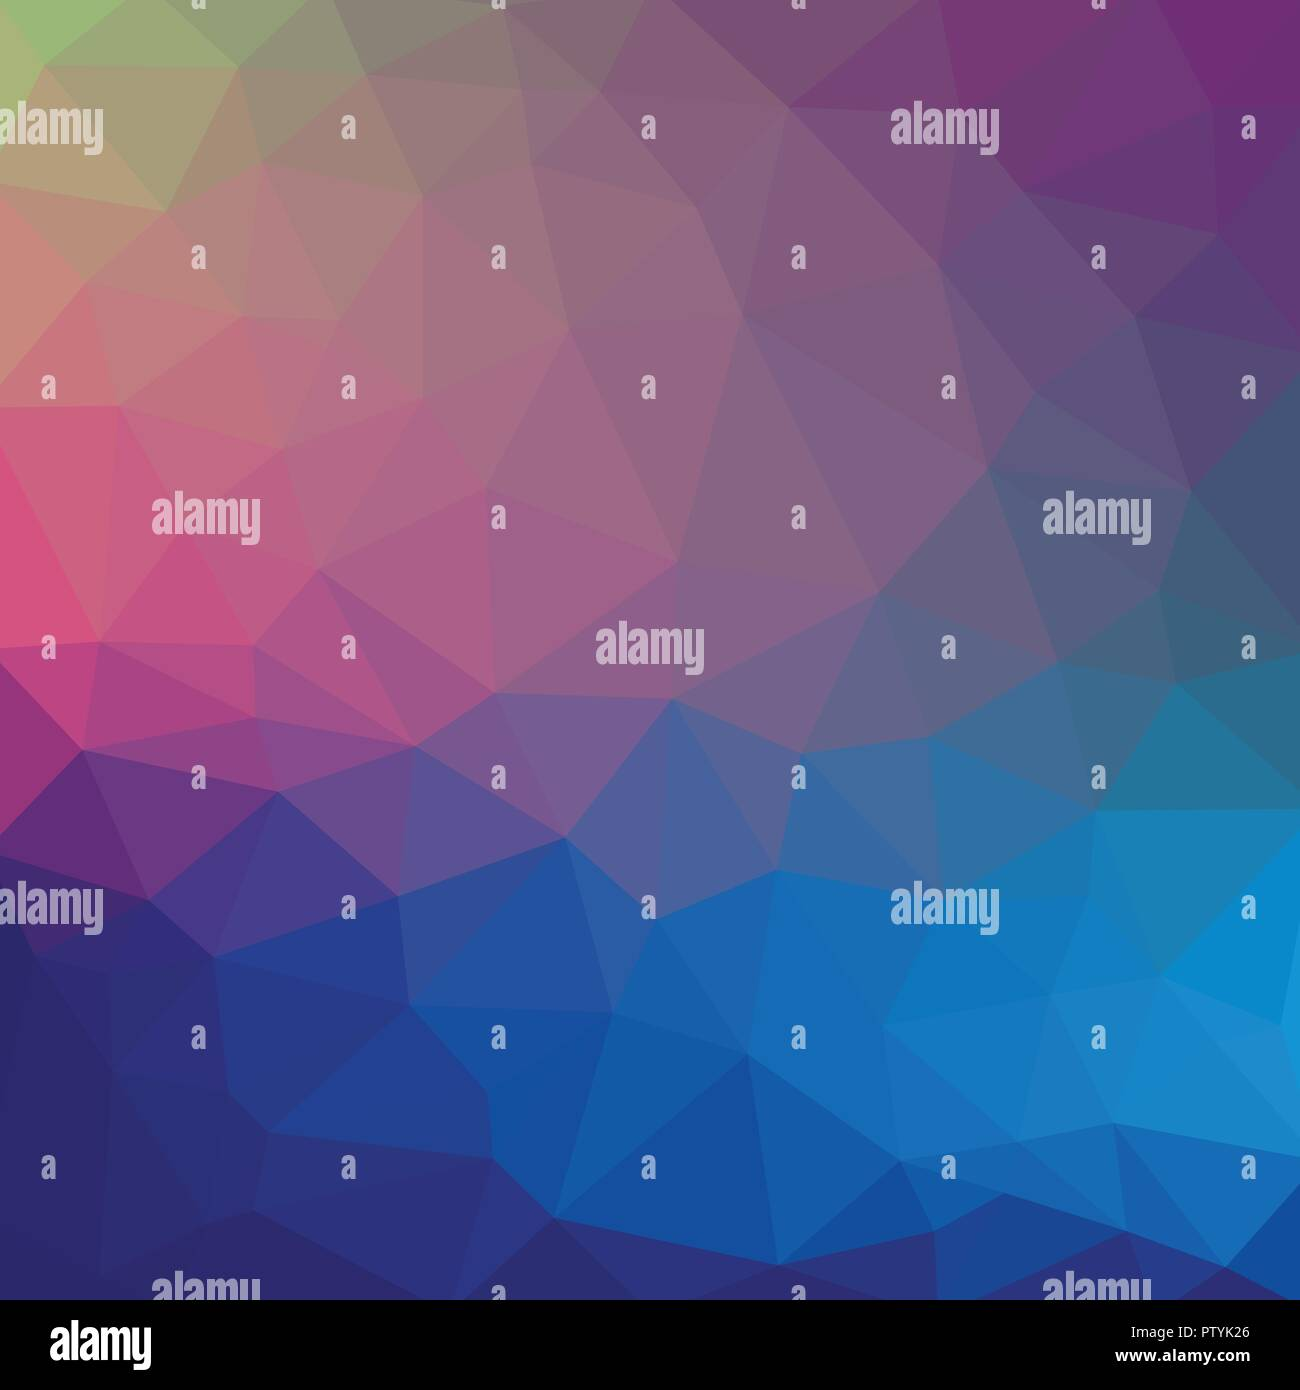 Light Blue Cool Vector Low Poly Crystal Background Polygon Design Pattern Low Poly Illustration Background Stock Vector Image Art Alamy